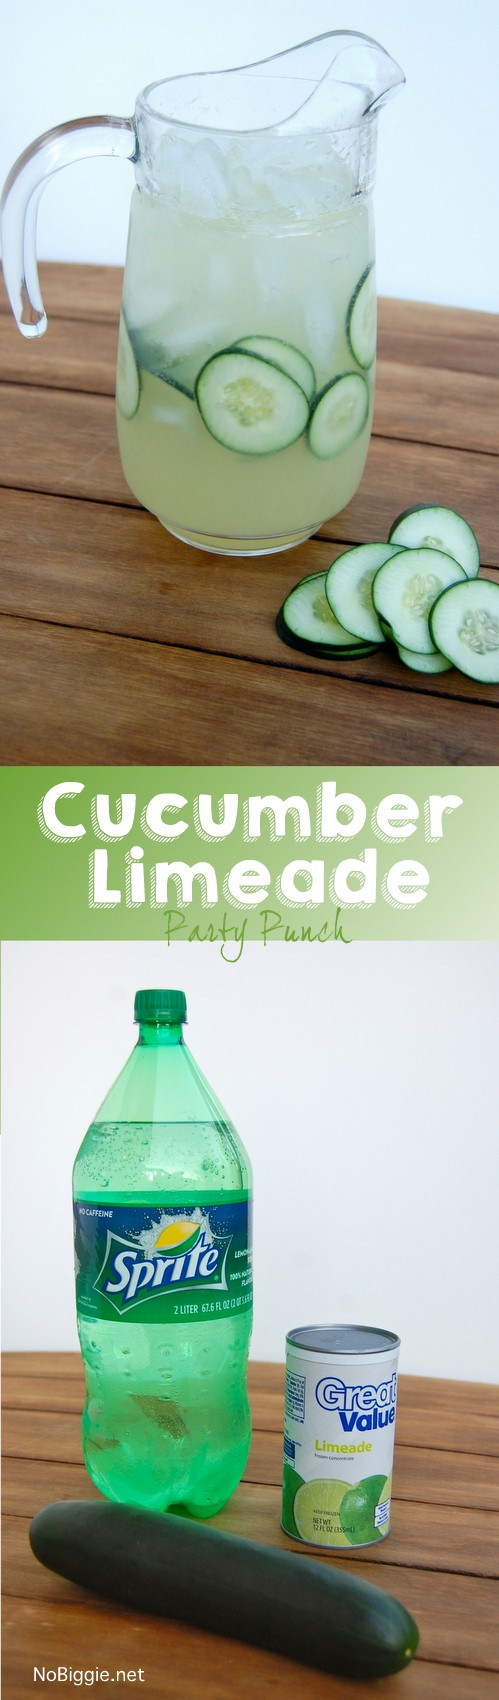 cucumber limeade party punch - this punch is so easy and so good!   NoBiggie.net